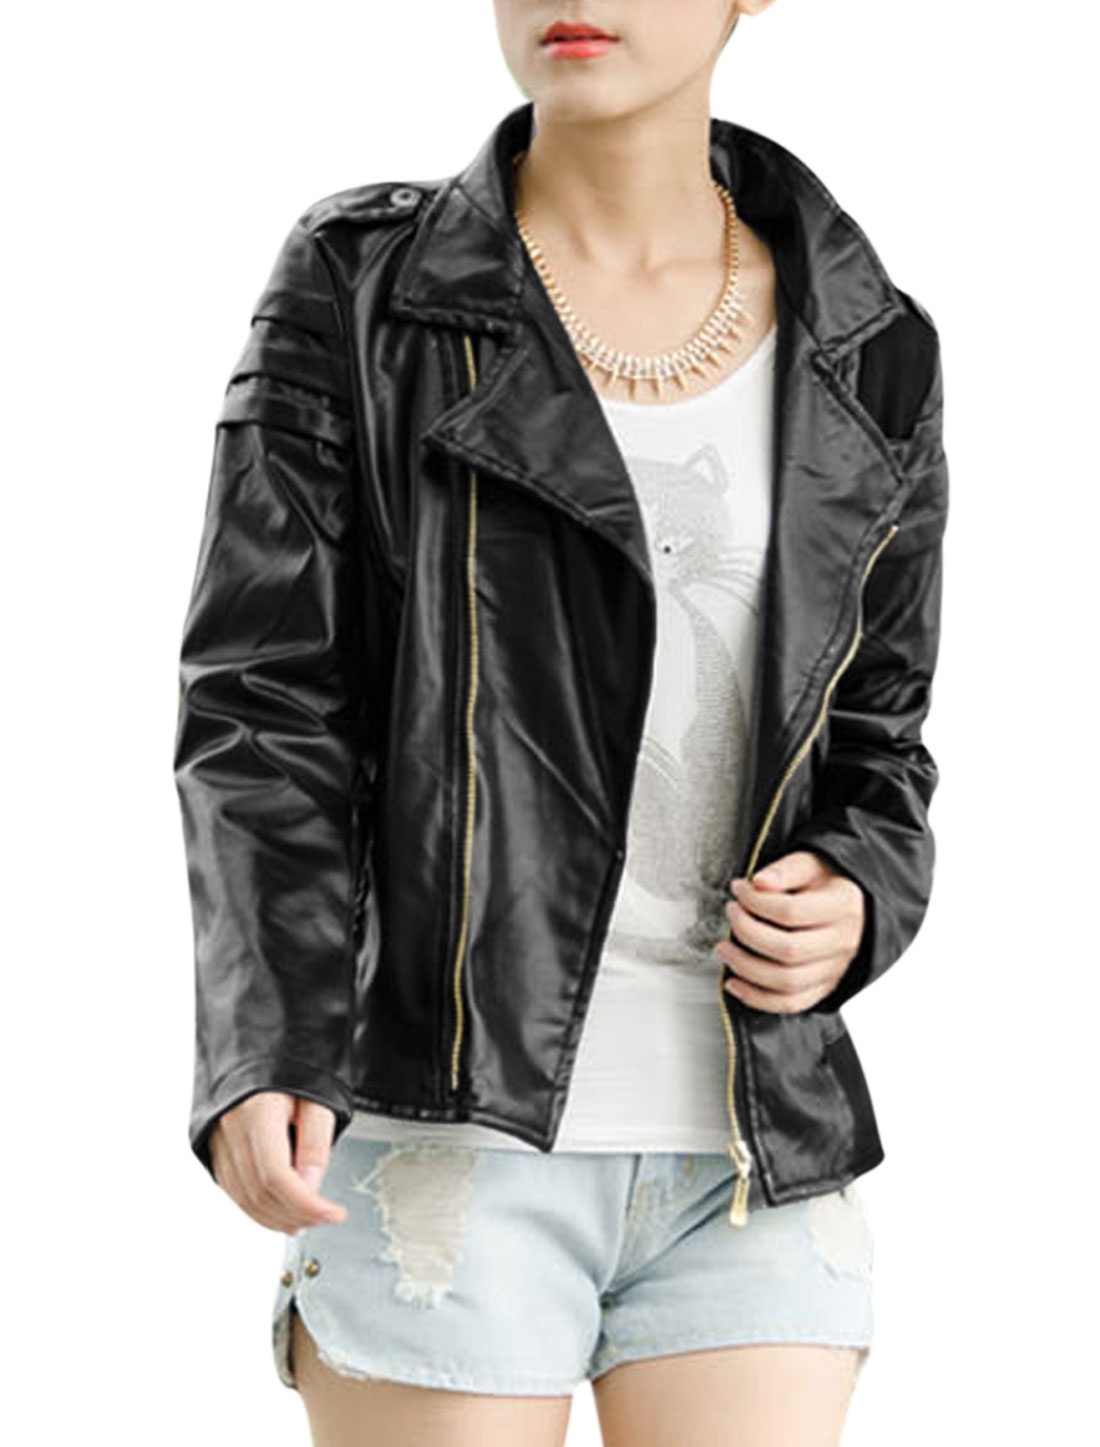 Women Zip Up Front Flap Decor Spliced Imitation Leather Jacket Black S